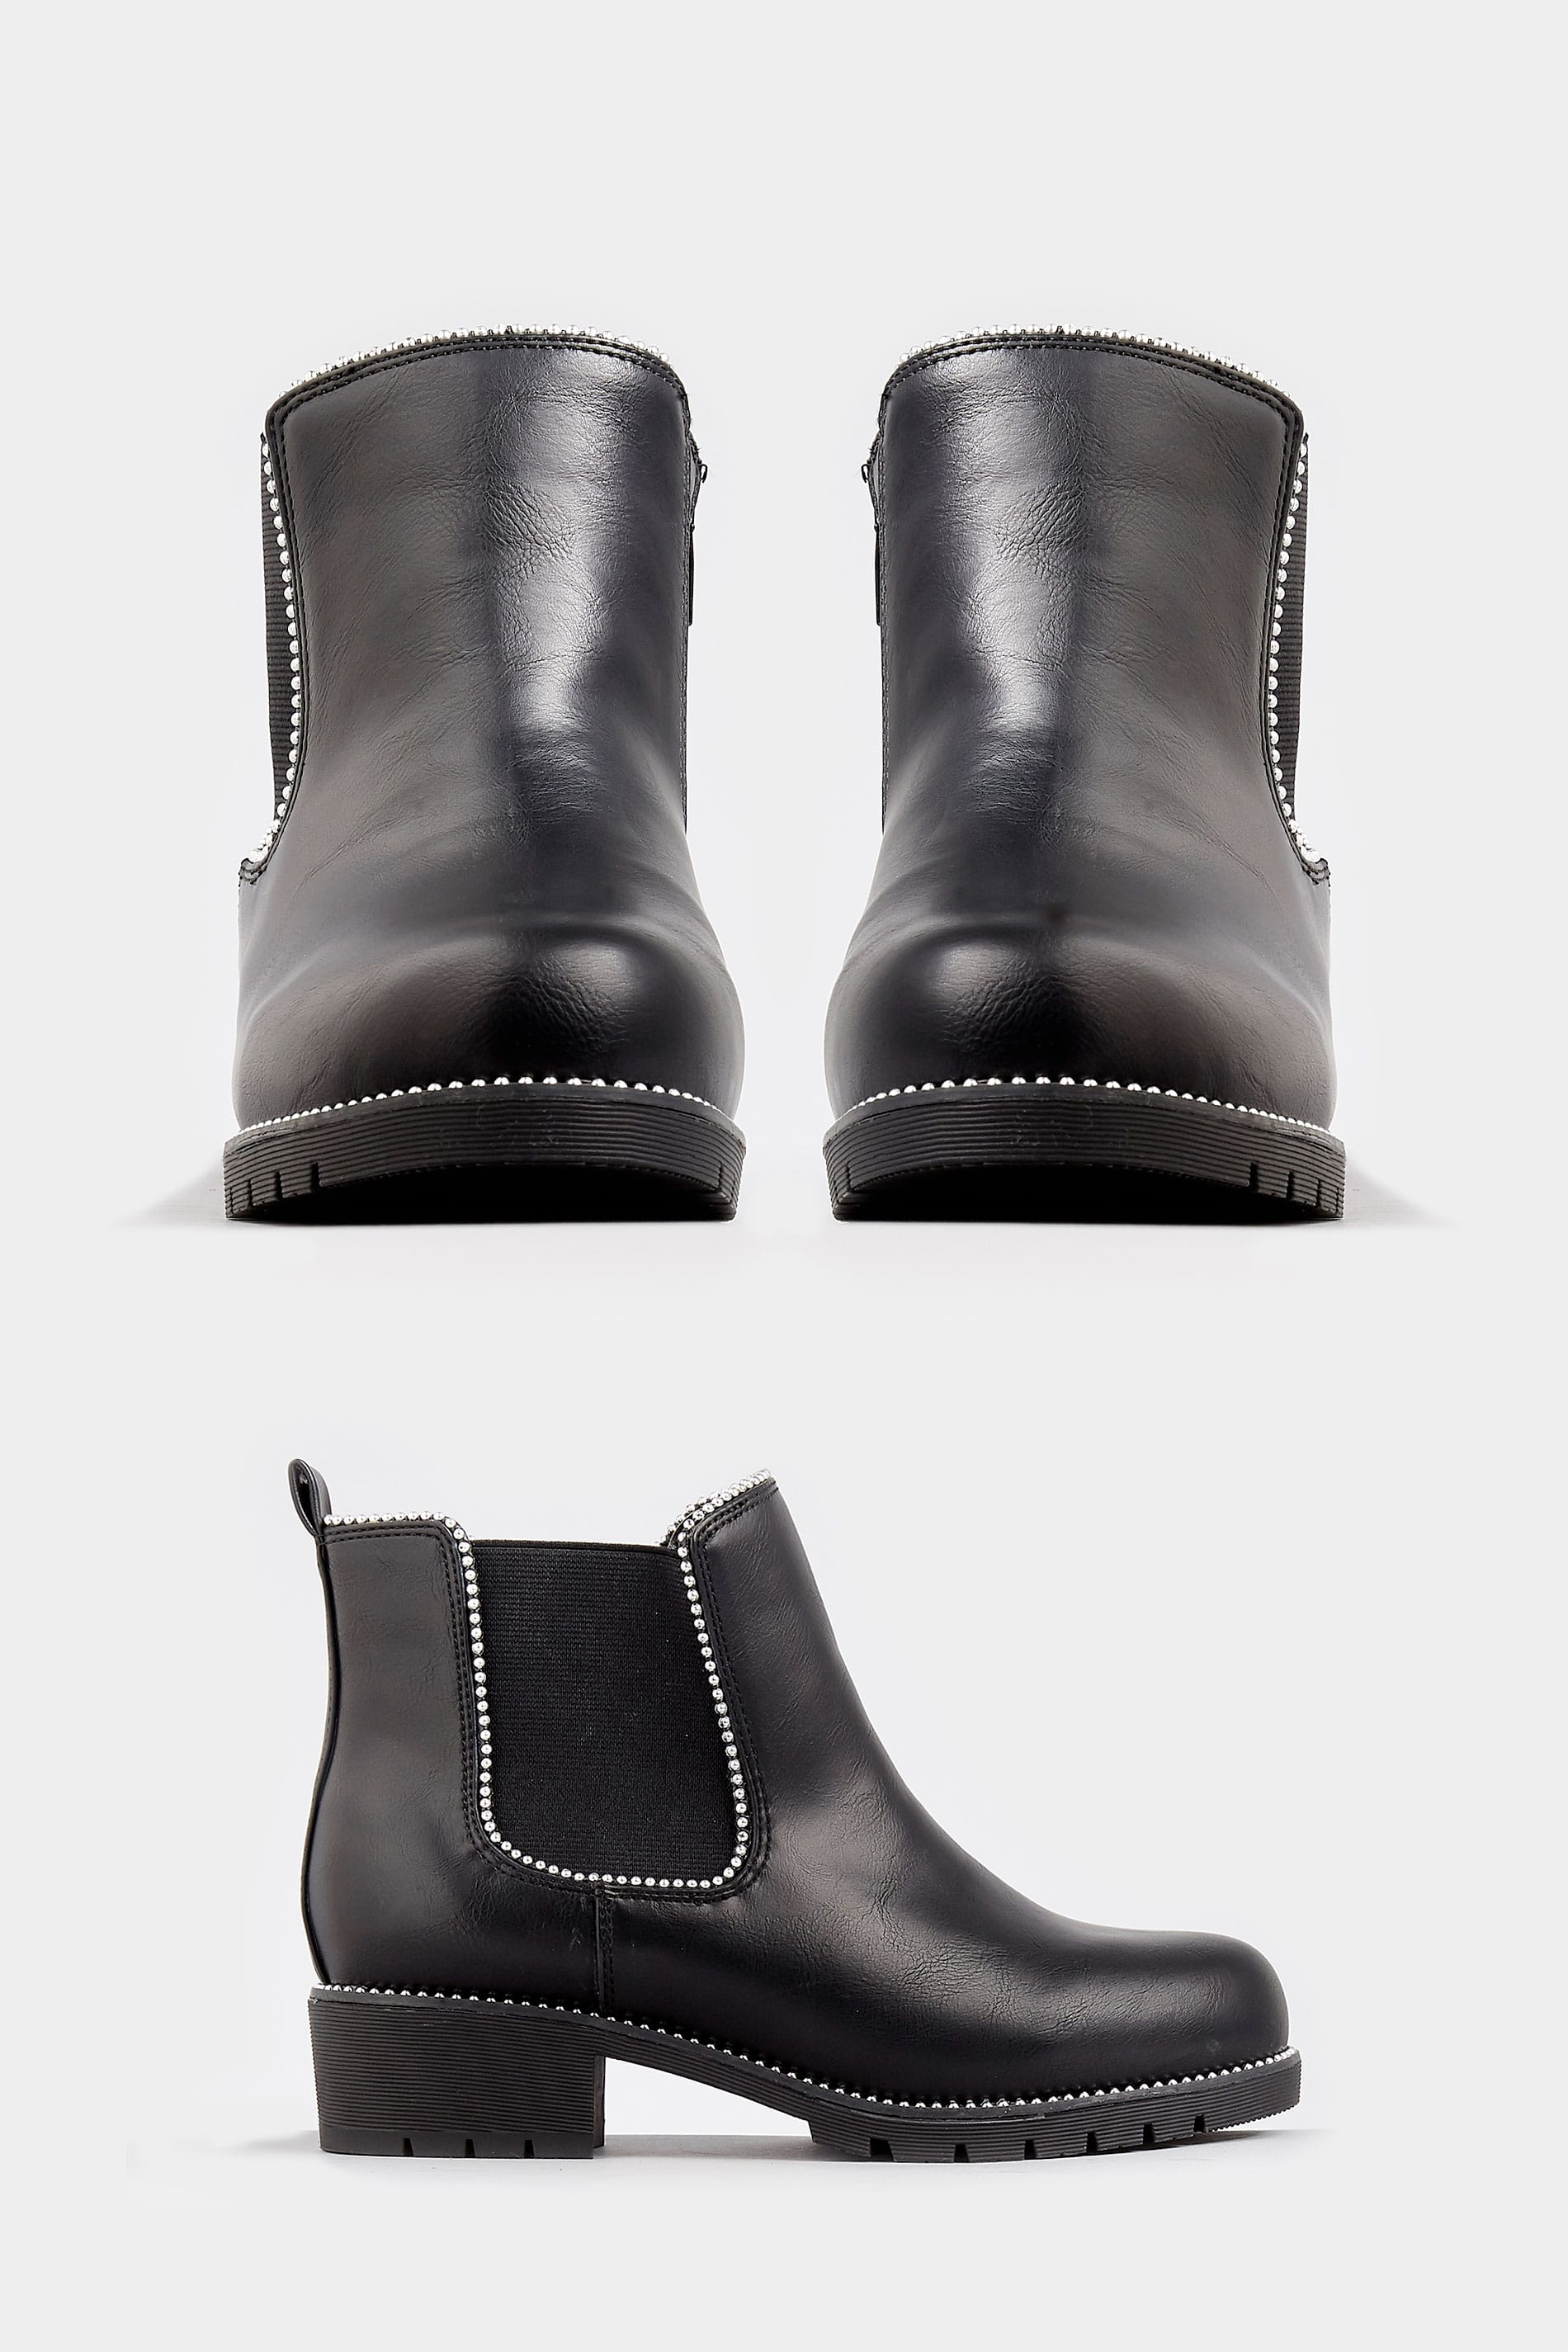 Larges Strass EEE à Pieds Bottines Noires eY2IDHWE9b